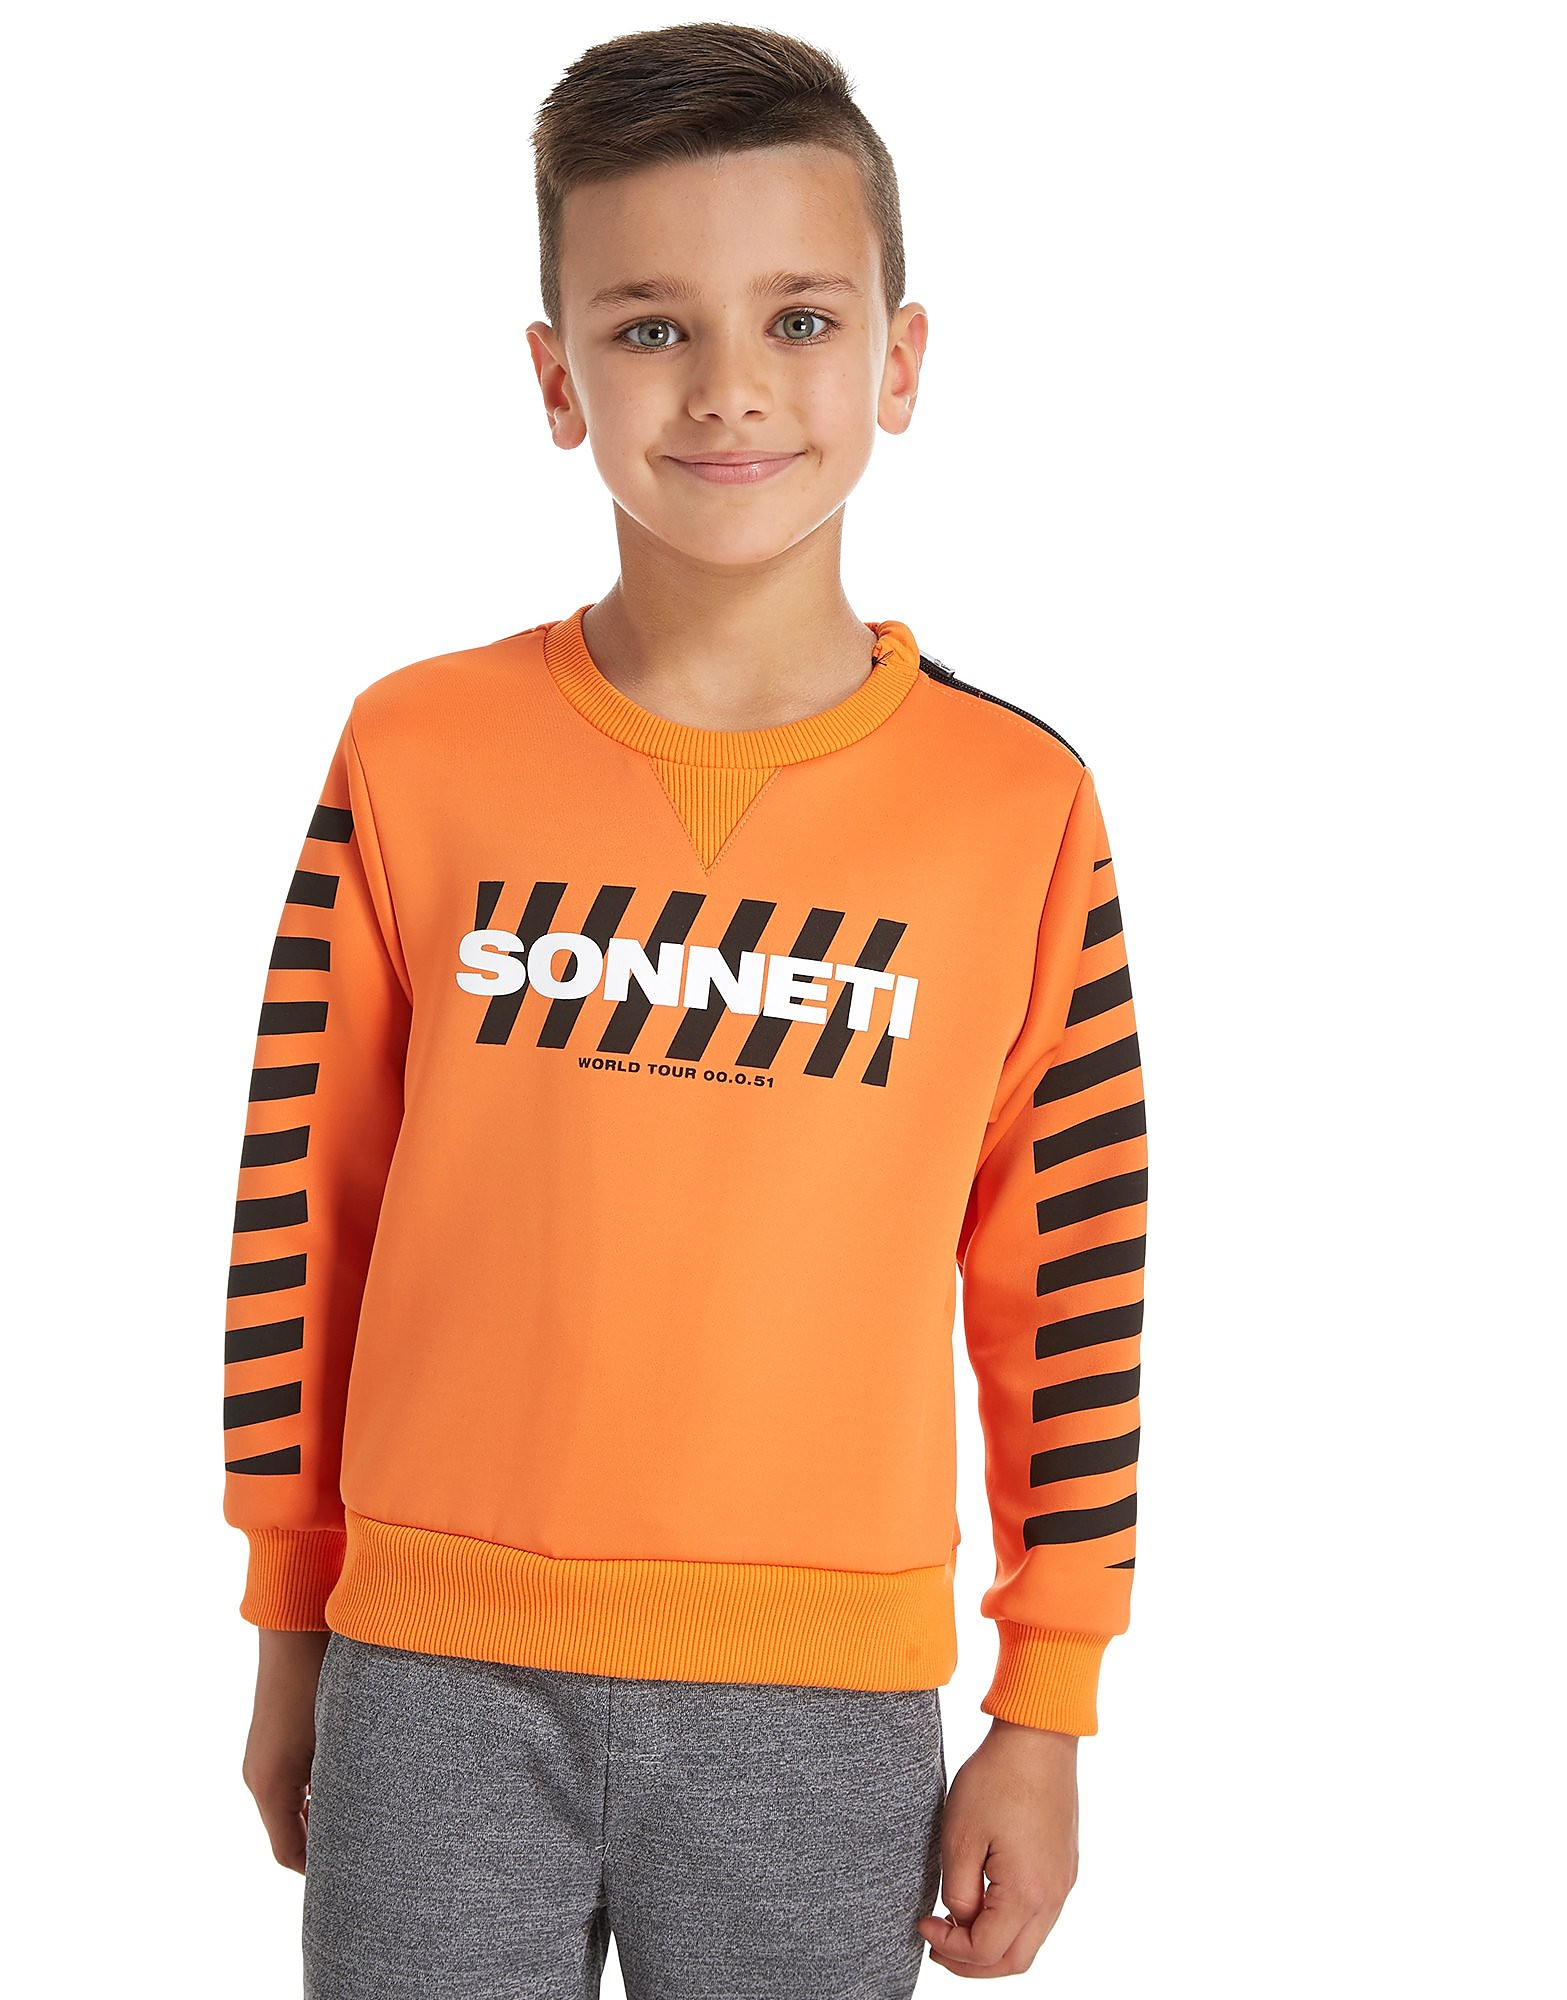 Sonneti Blade Run Sweatshirt Childrens